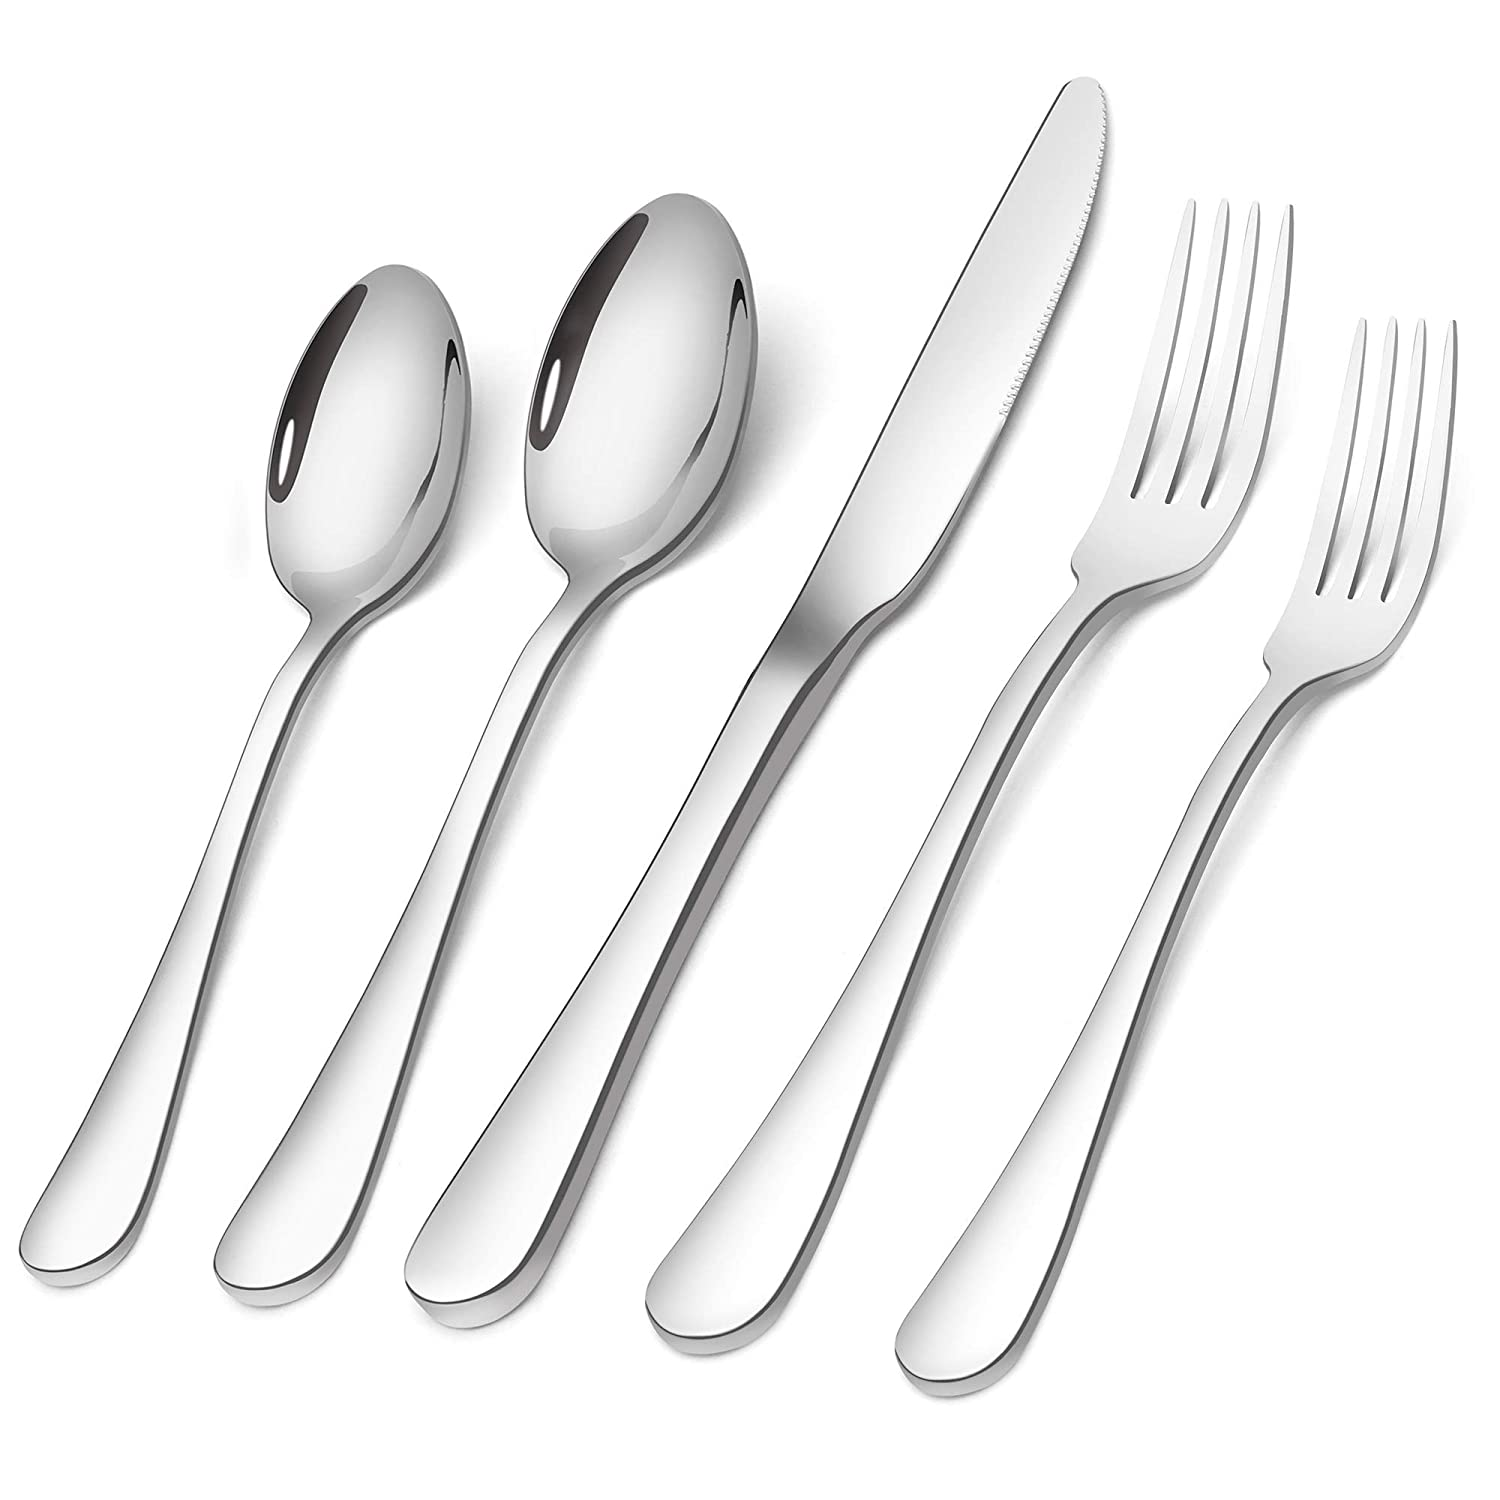 Silverware Set,SHARECOOK 20-Piece Stainless Steel Flatware Set,Kitchen Utensil Set Service for 4,Tableware Cutlery Set for Home and Restaurant, Dishwasher Safe